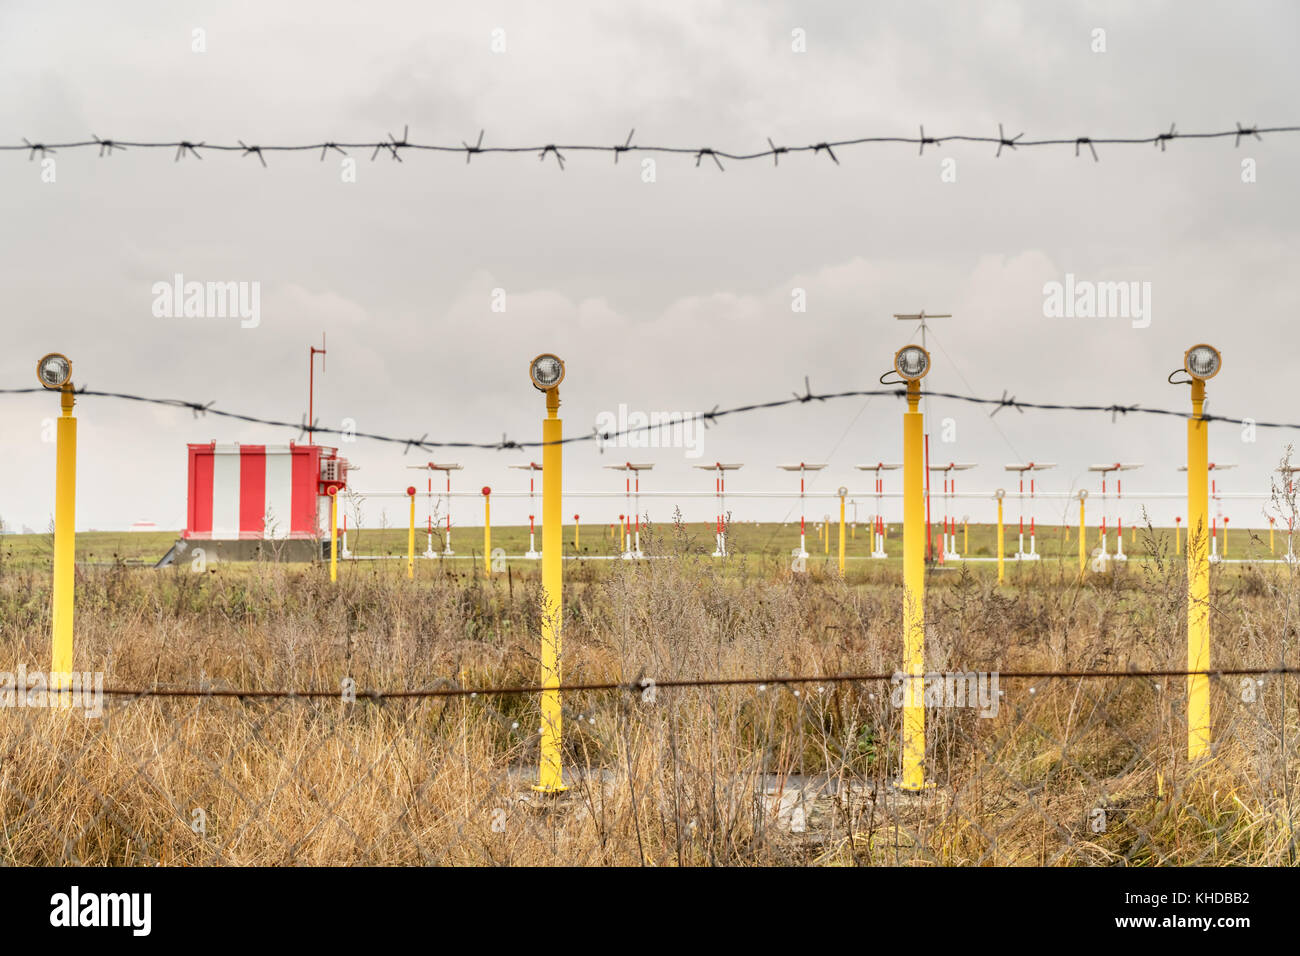 Radars and poles with landing lights of the airport behind a fence with a  barbed wire